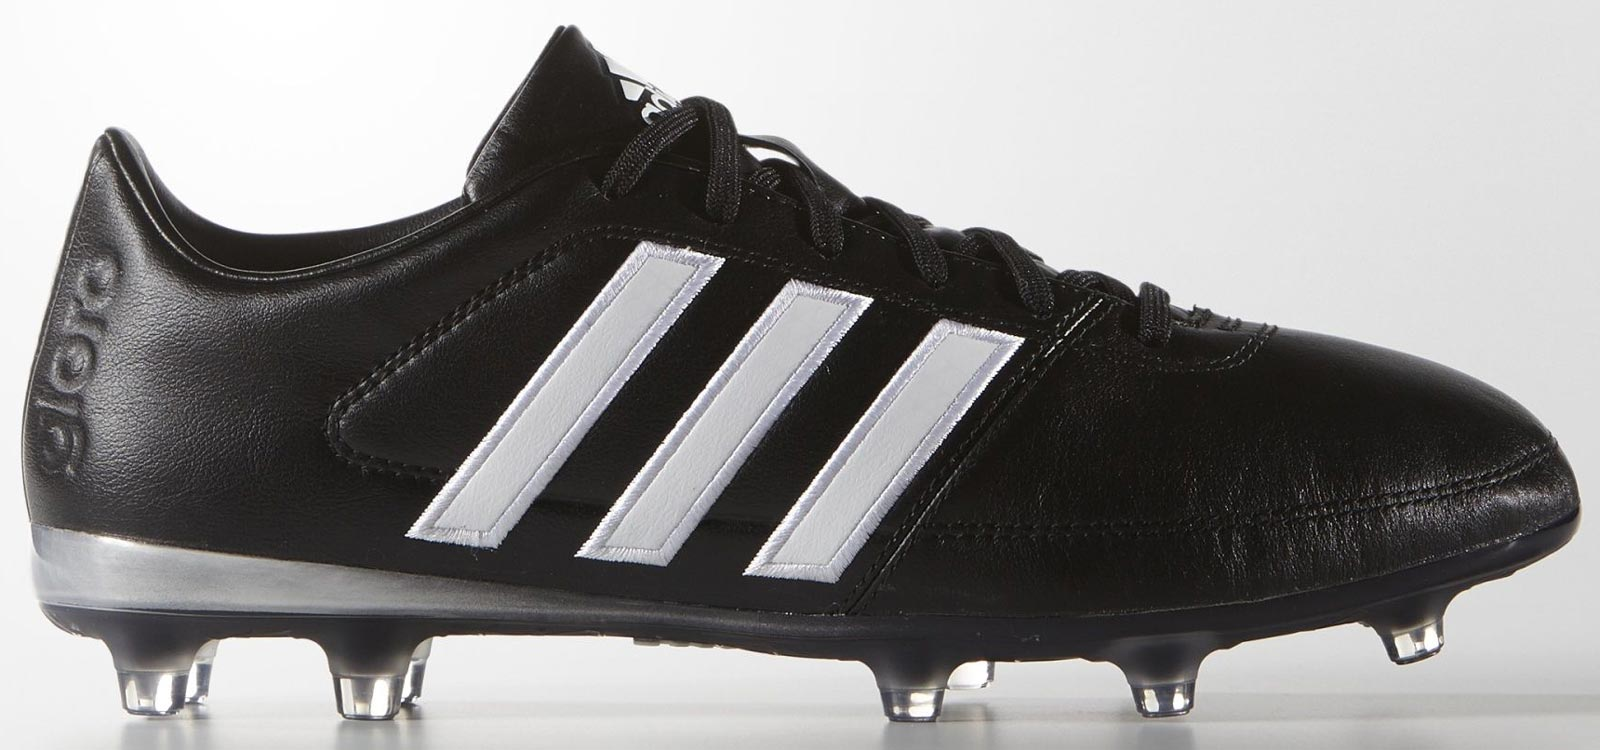 black next adidas gloro 16 1 boots released footy